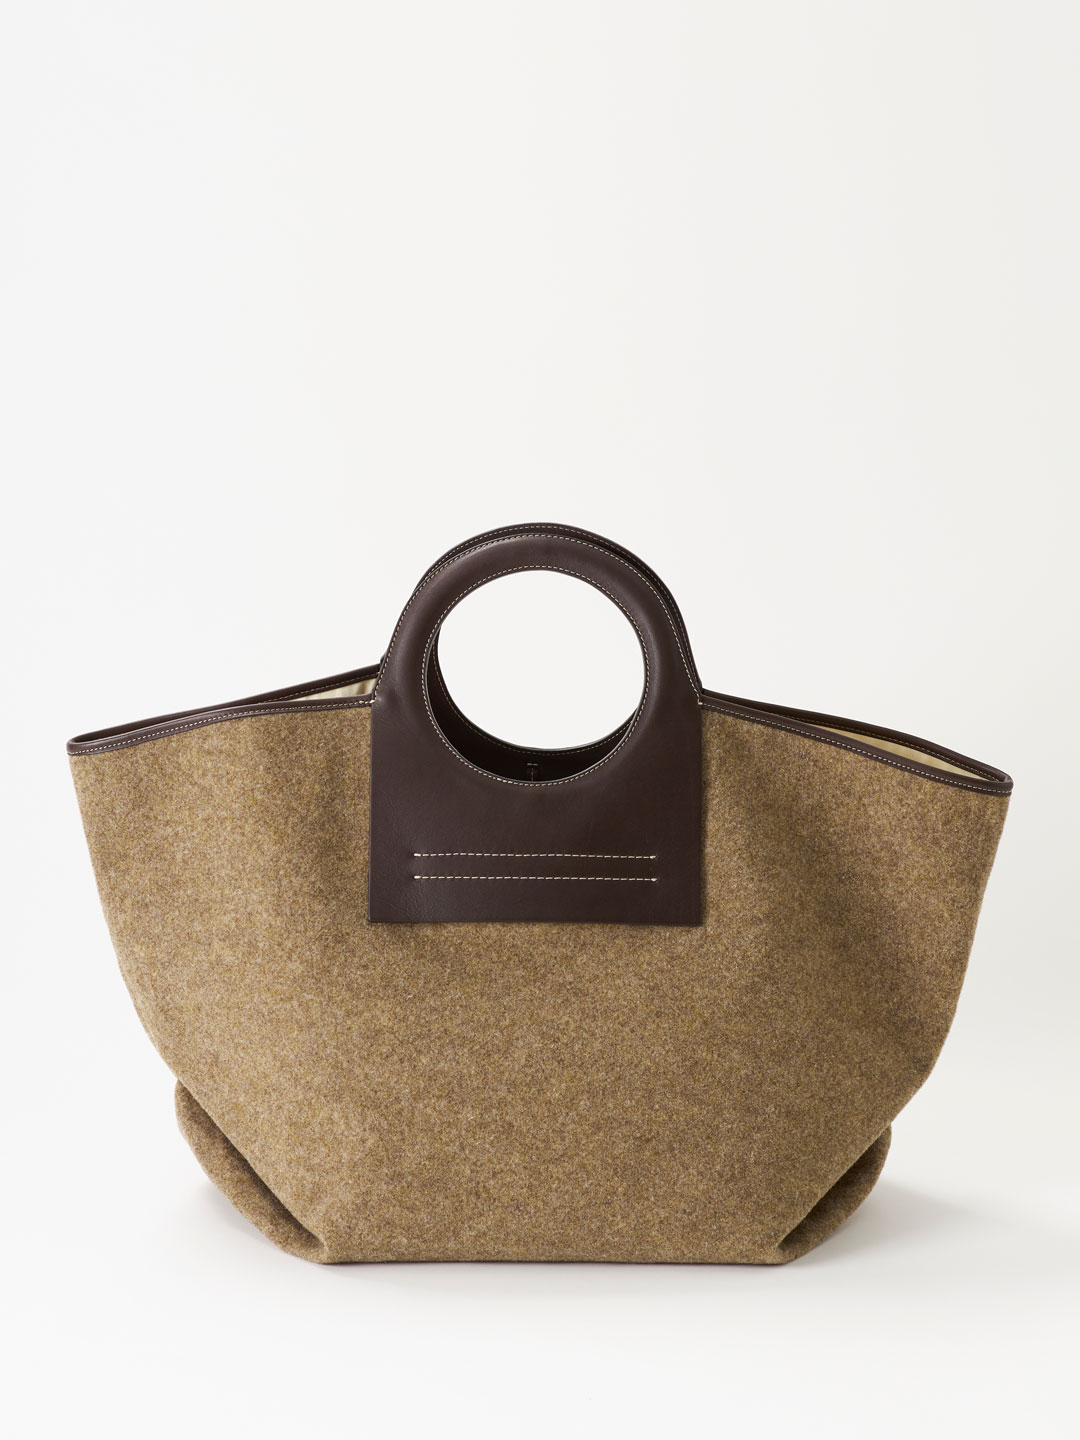 CALA Leather Canvas Tote - Brown